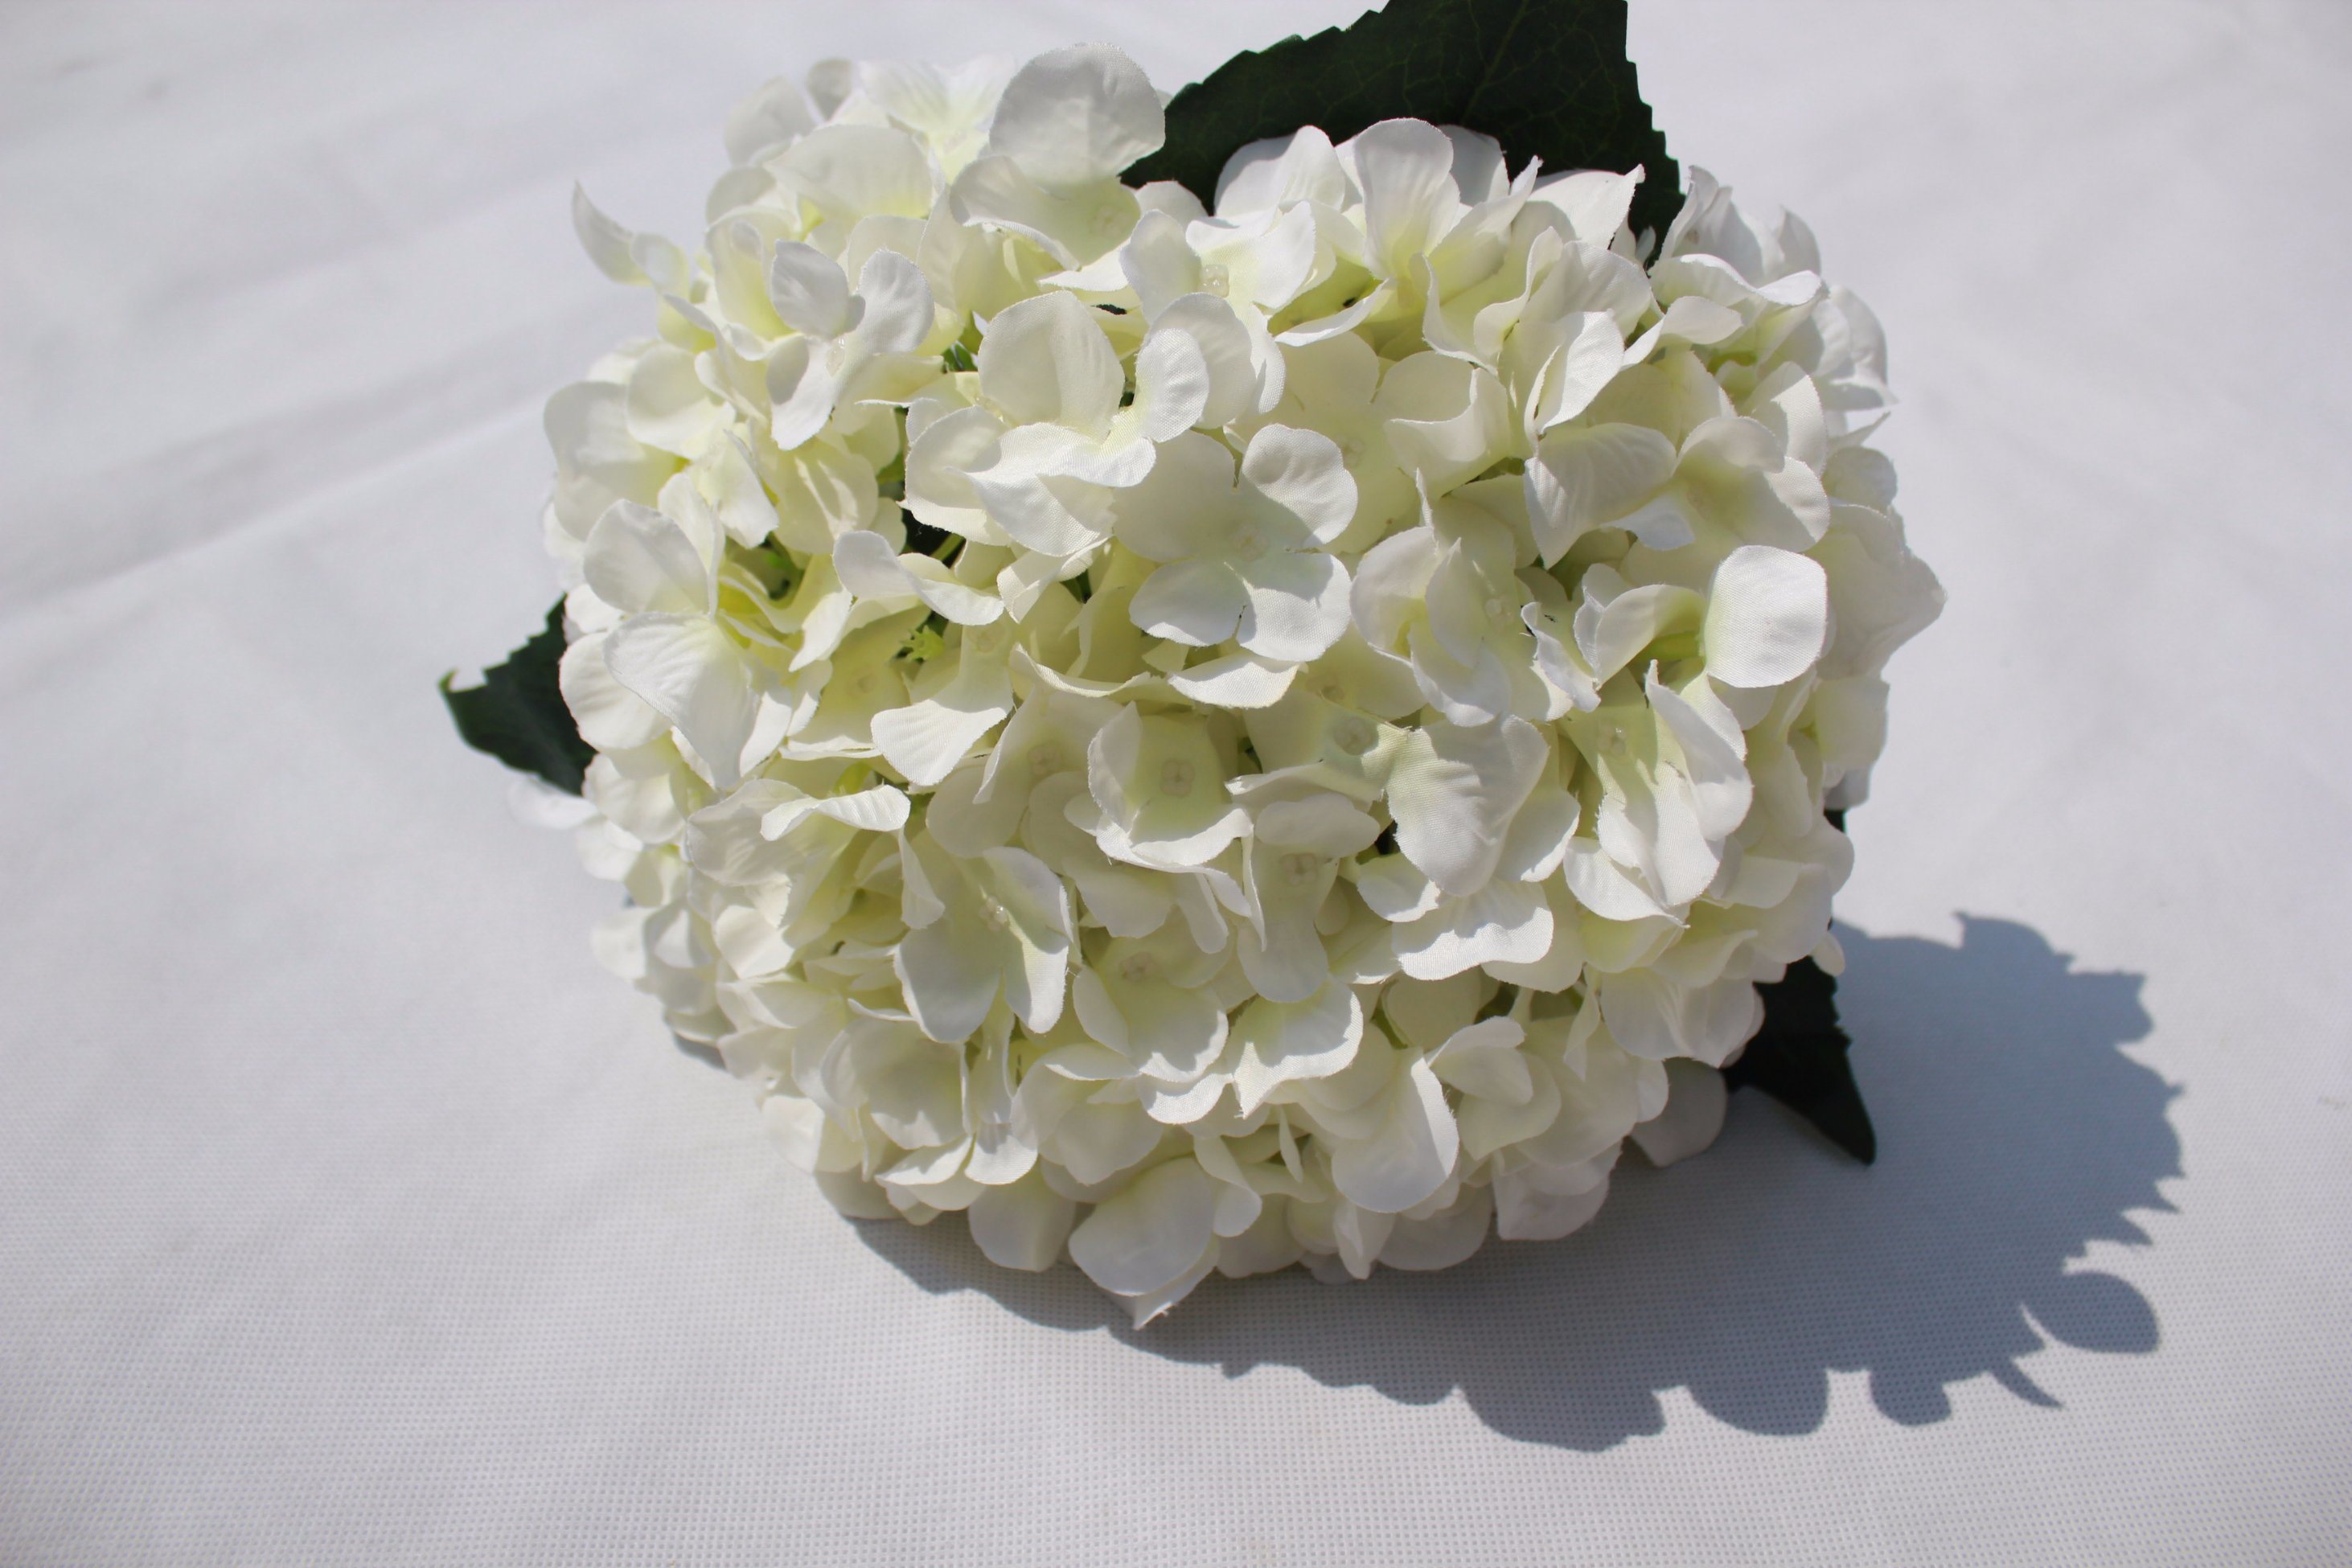 China White Silk Artificial Hydrangea Flowers Fake Flowers For